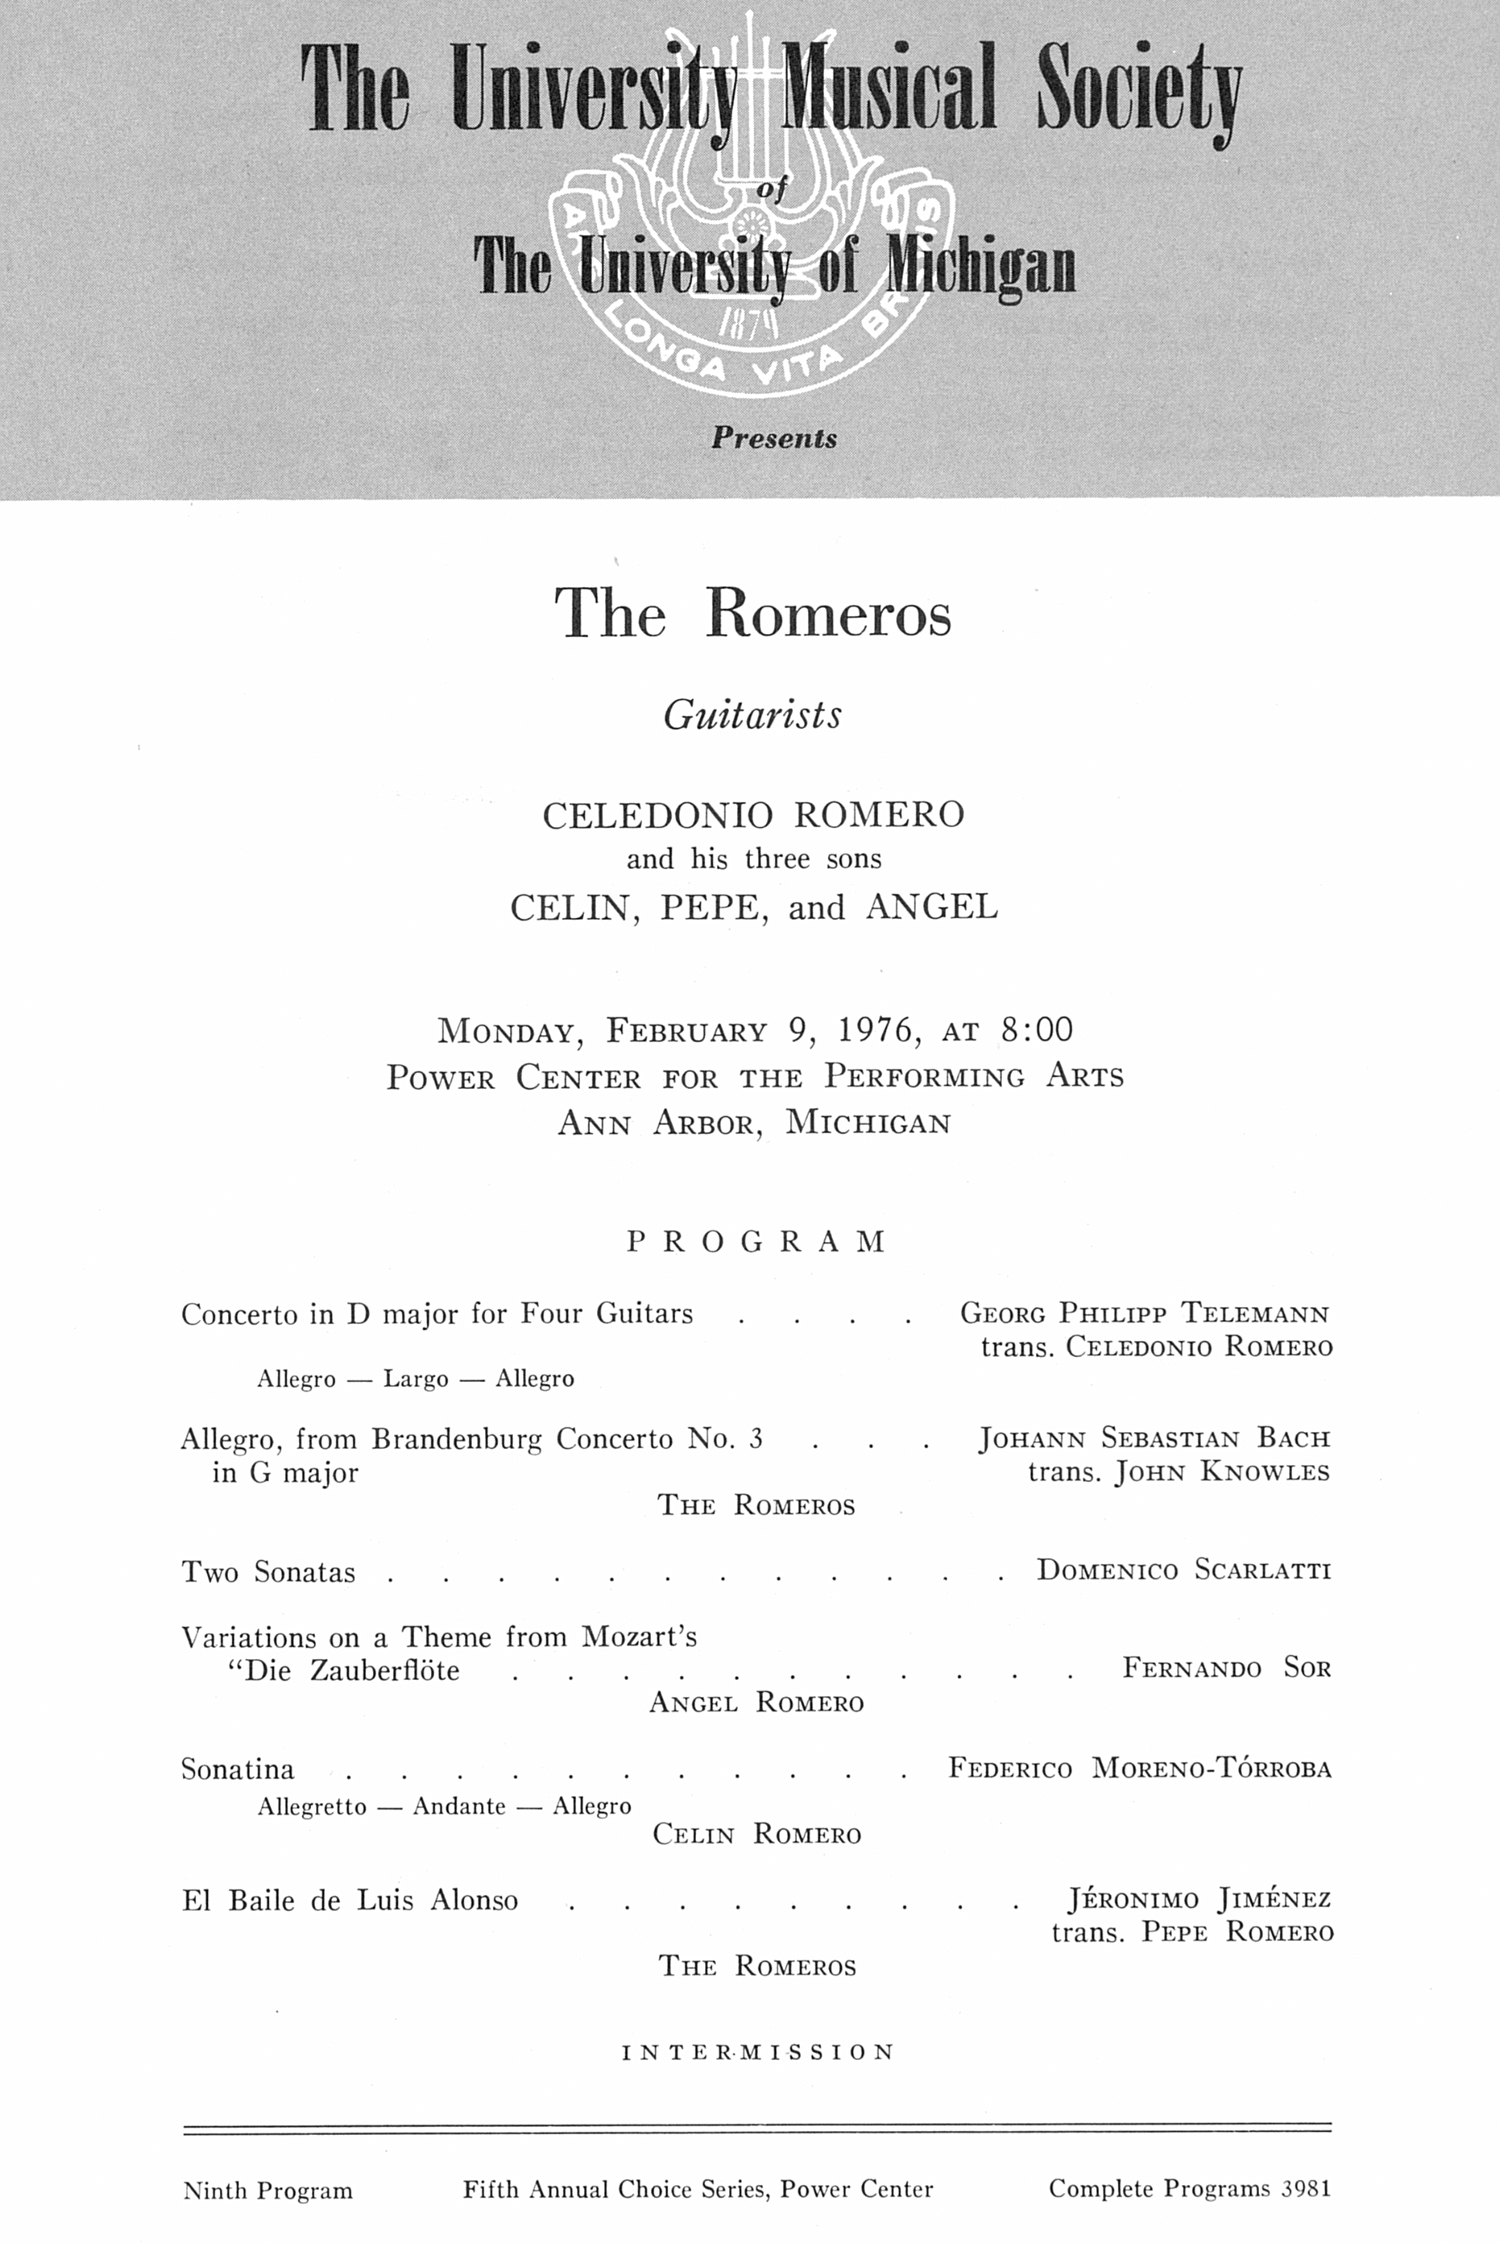 UMS Concert Program, February 9, 1976: The Romeros --  image